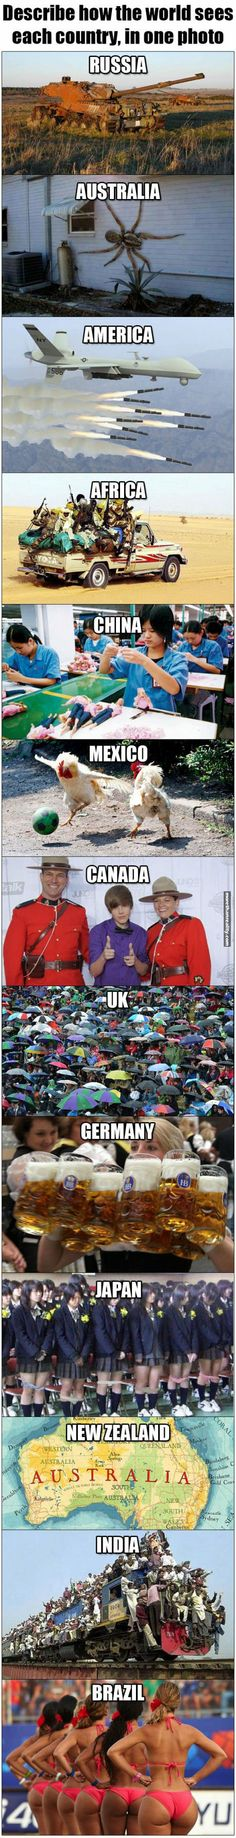 Countries illustrated in one picture